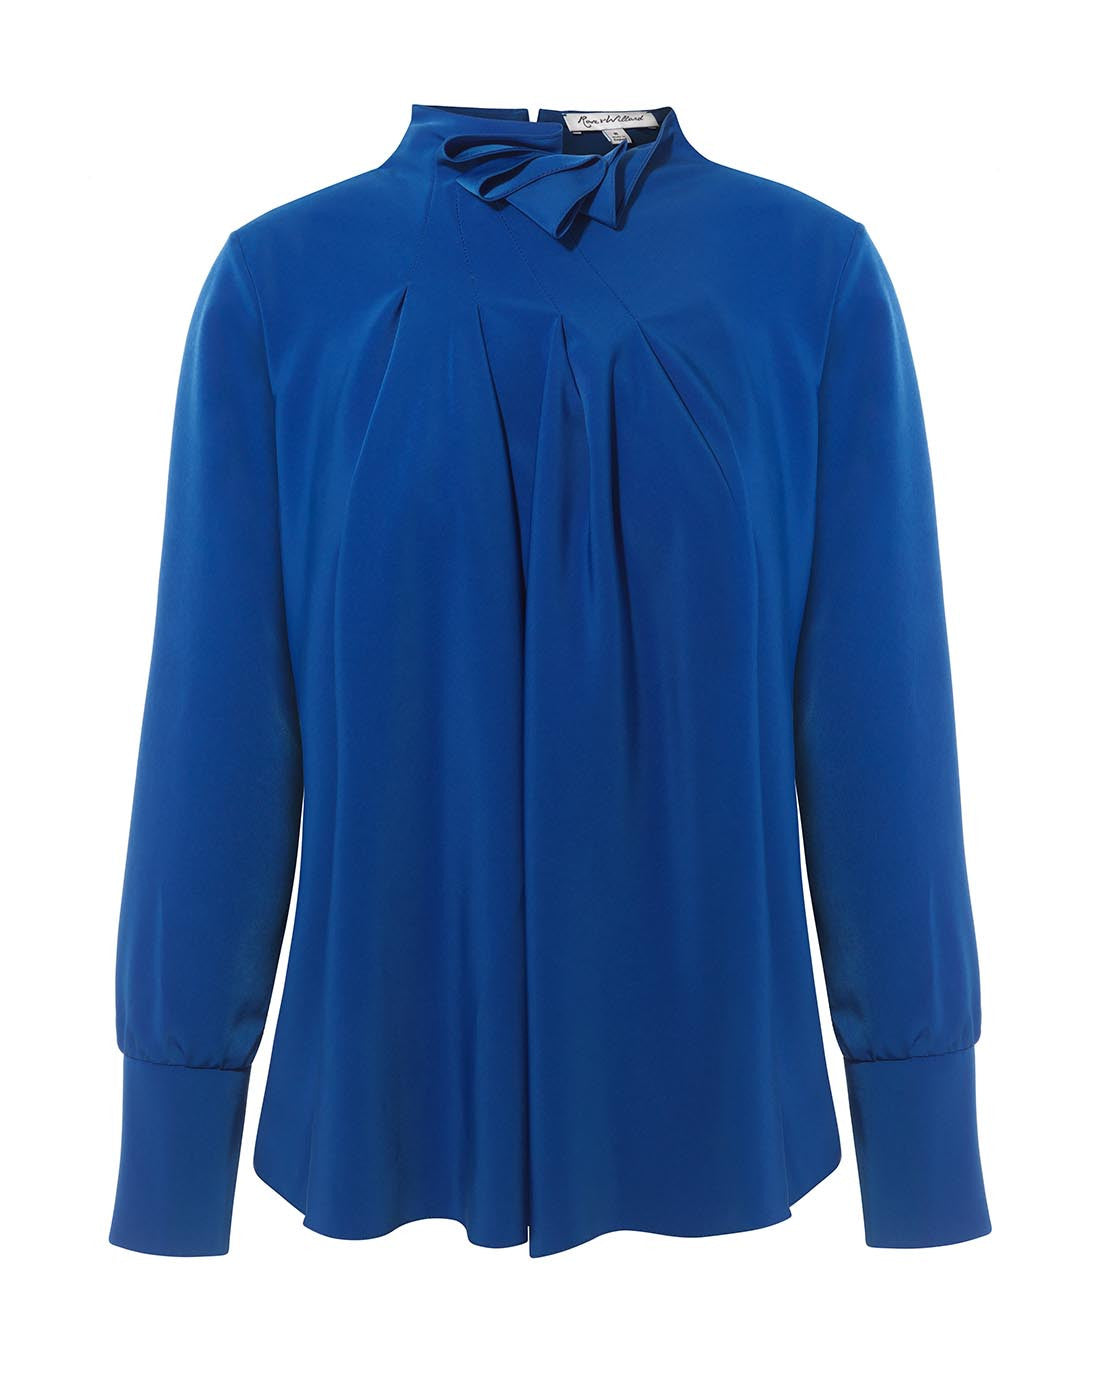 FEISTY RUFFLE NECK DRAPE BLOUSE COBALT BLUE